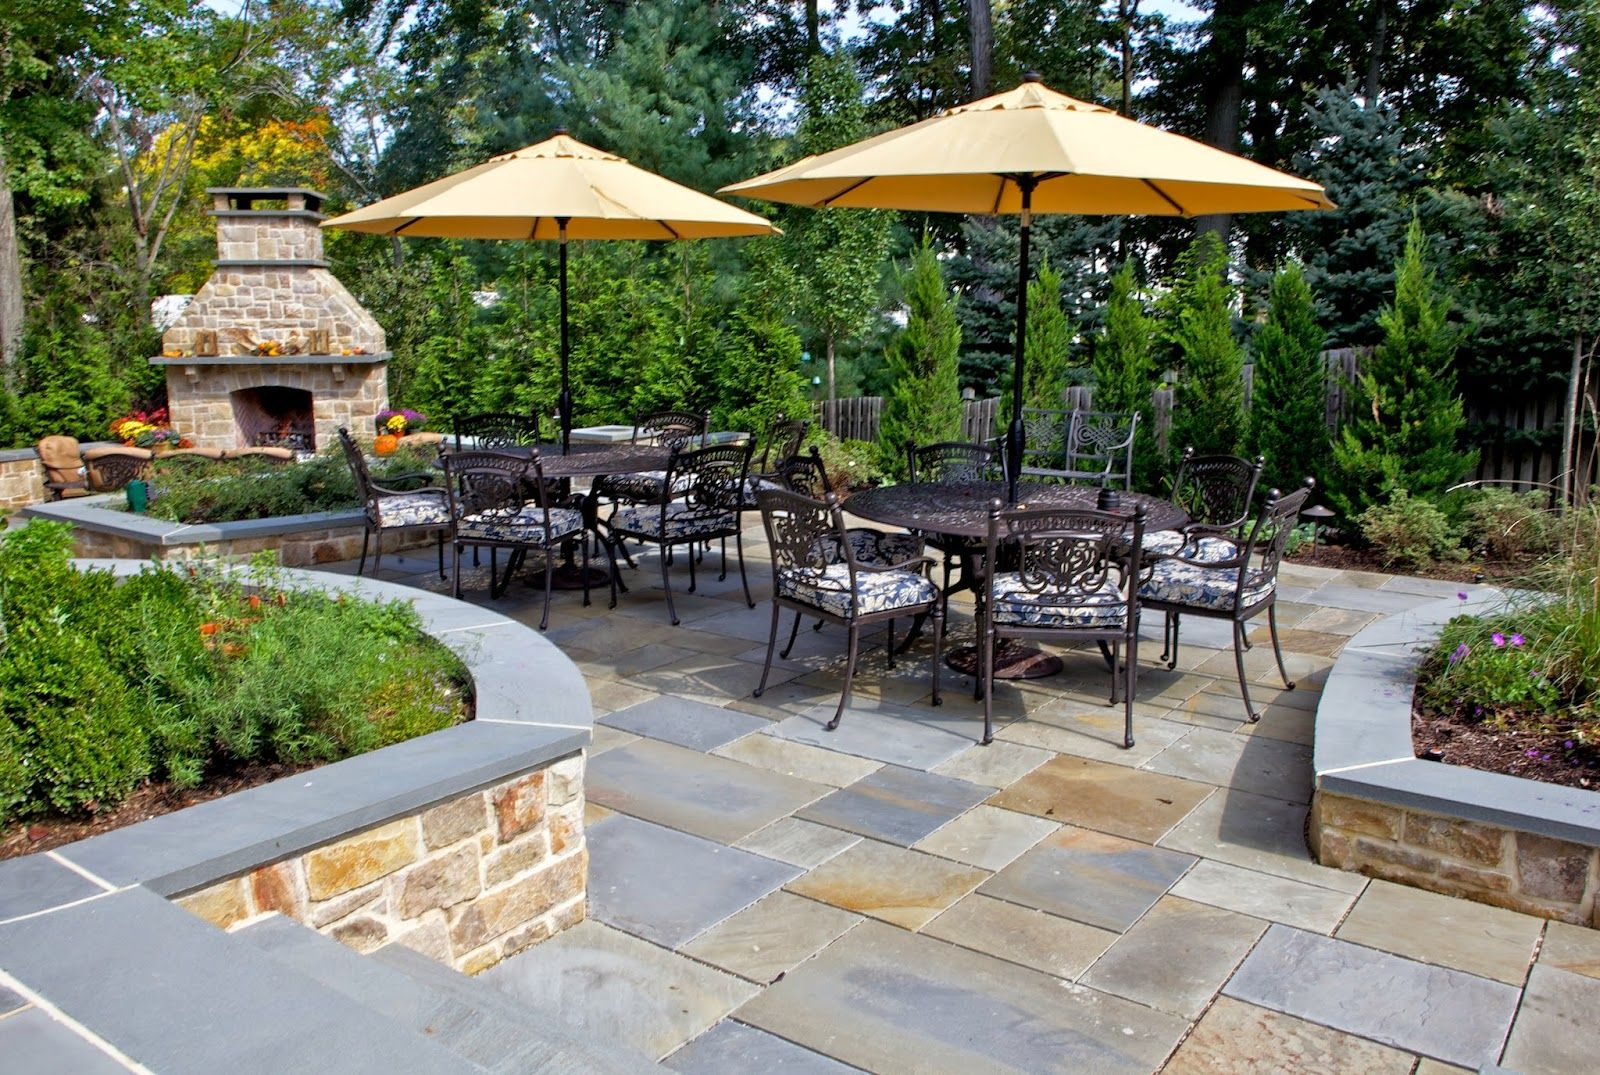 Awesome stone patio designs perfect for your